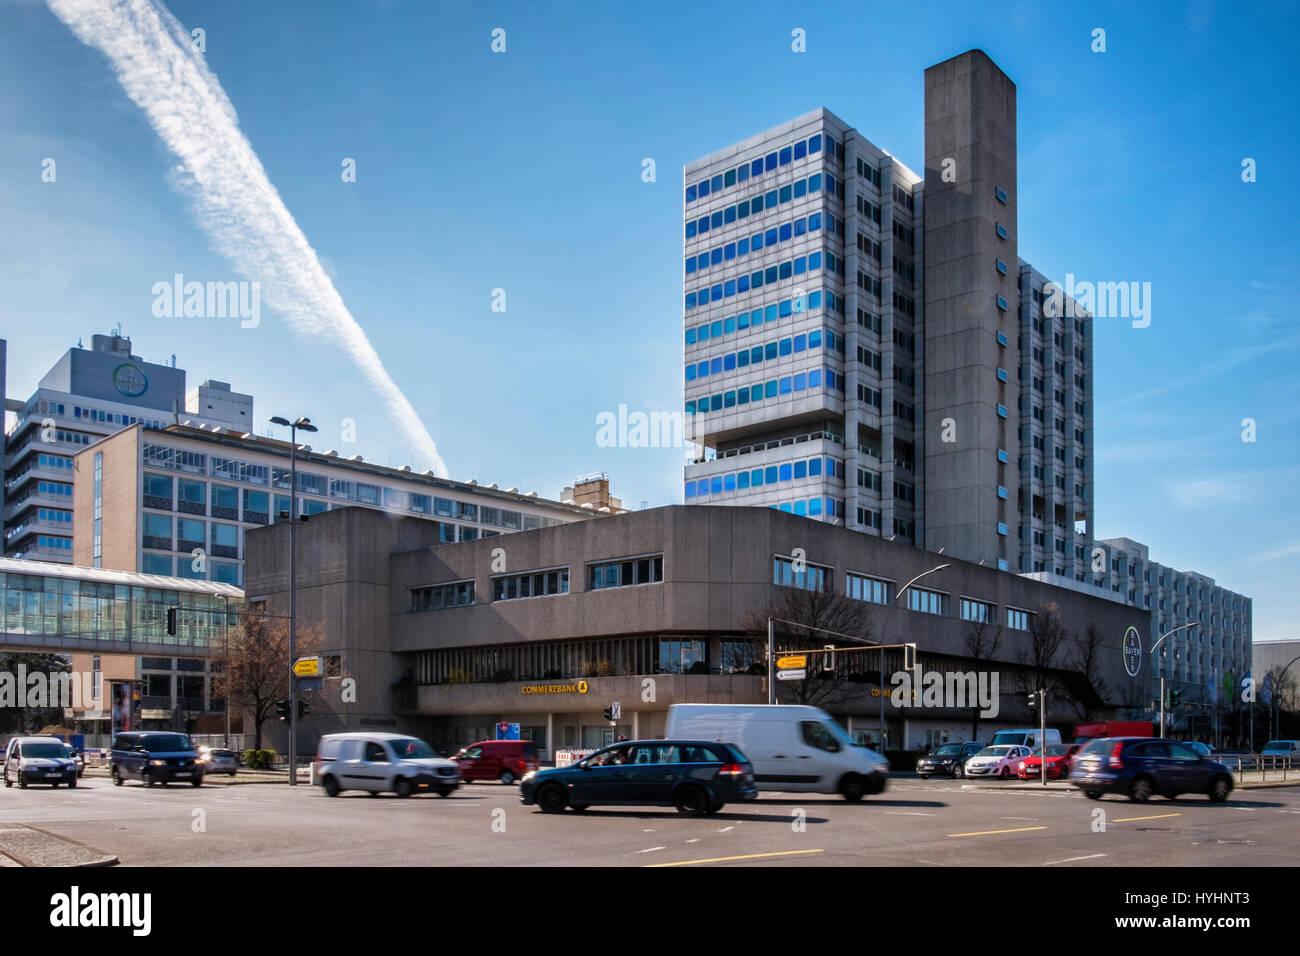 Berlin, Germany. Bayer Pharma AG building exterior. Pharmaceutical company offices and laboratories,Business makes - Stock Image